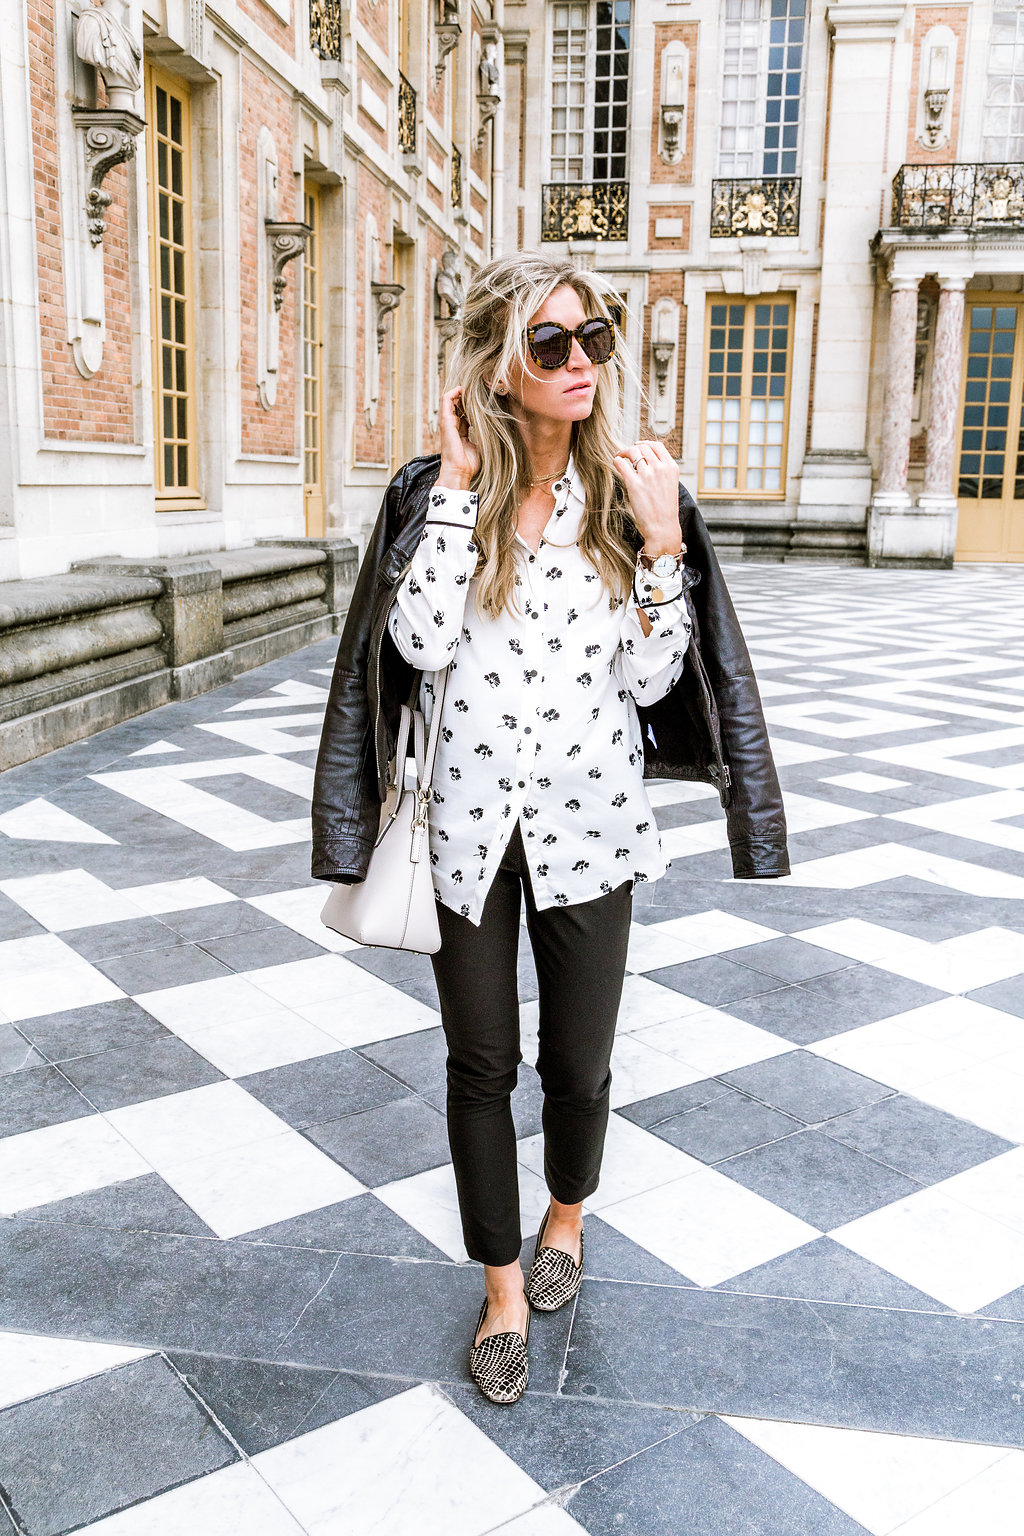 Leather jacket, floral top, leopard loafers.